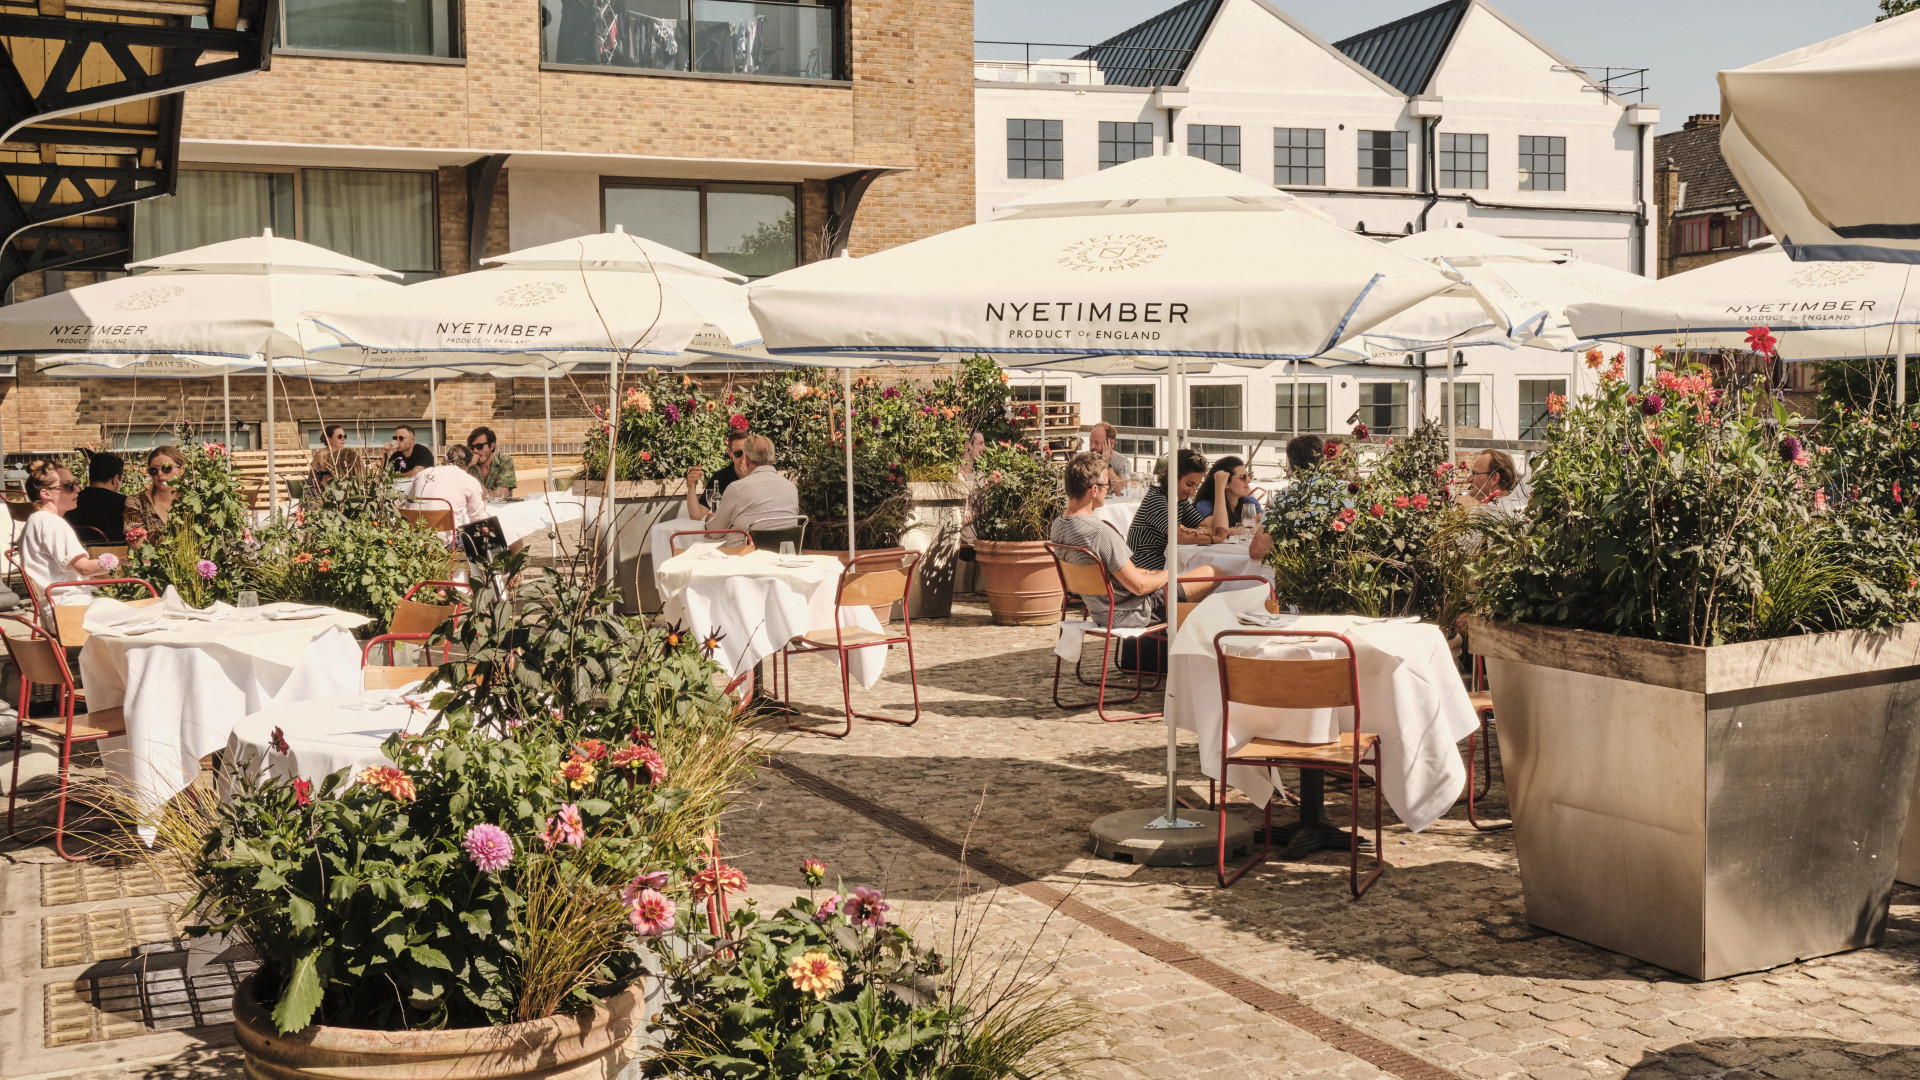 This is an image of the outdoor terrace at JOY at Portobello Docks in London.